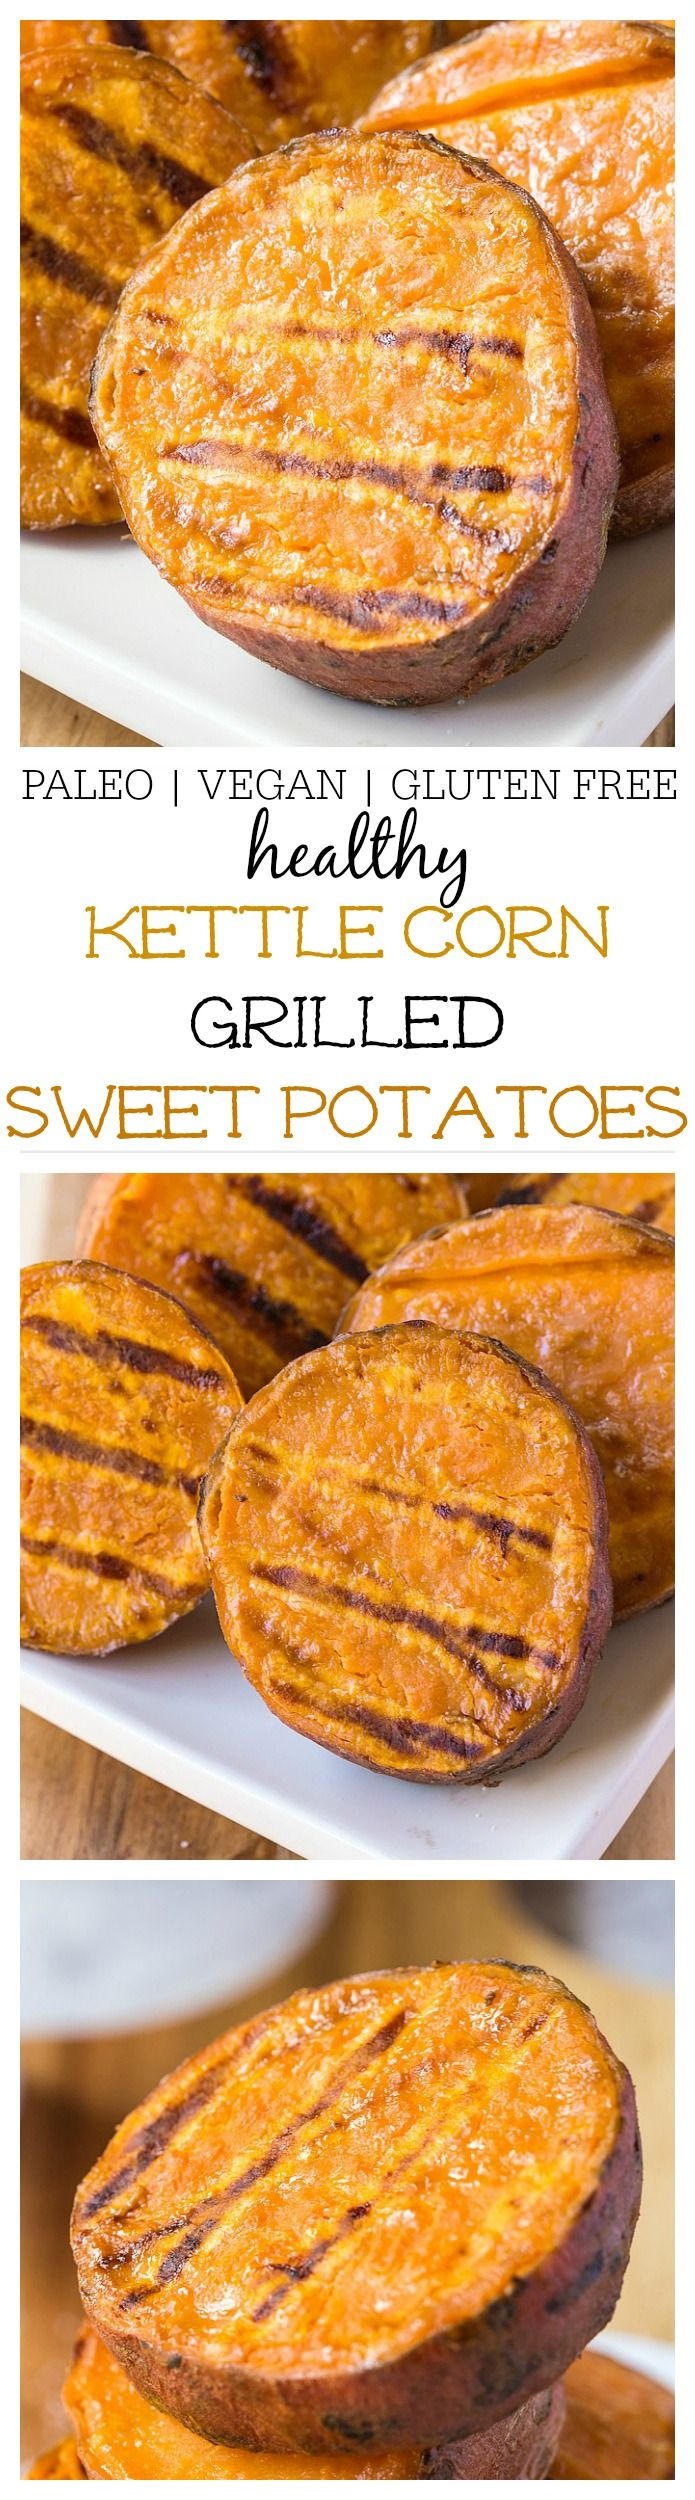 Kettle Corn Grilled Sweet Potatoes- A delicious, quick and easy side dish recipe or appetiser which is naturally gluten free, vegan and paleo and SO delicious hot OR cold! -thebigmansworld.com